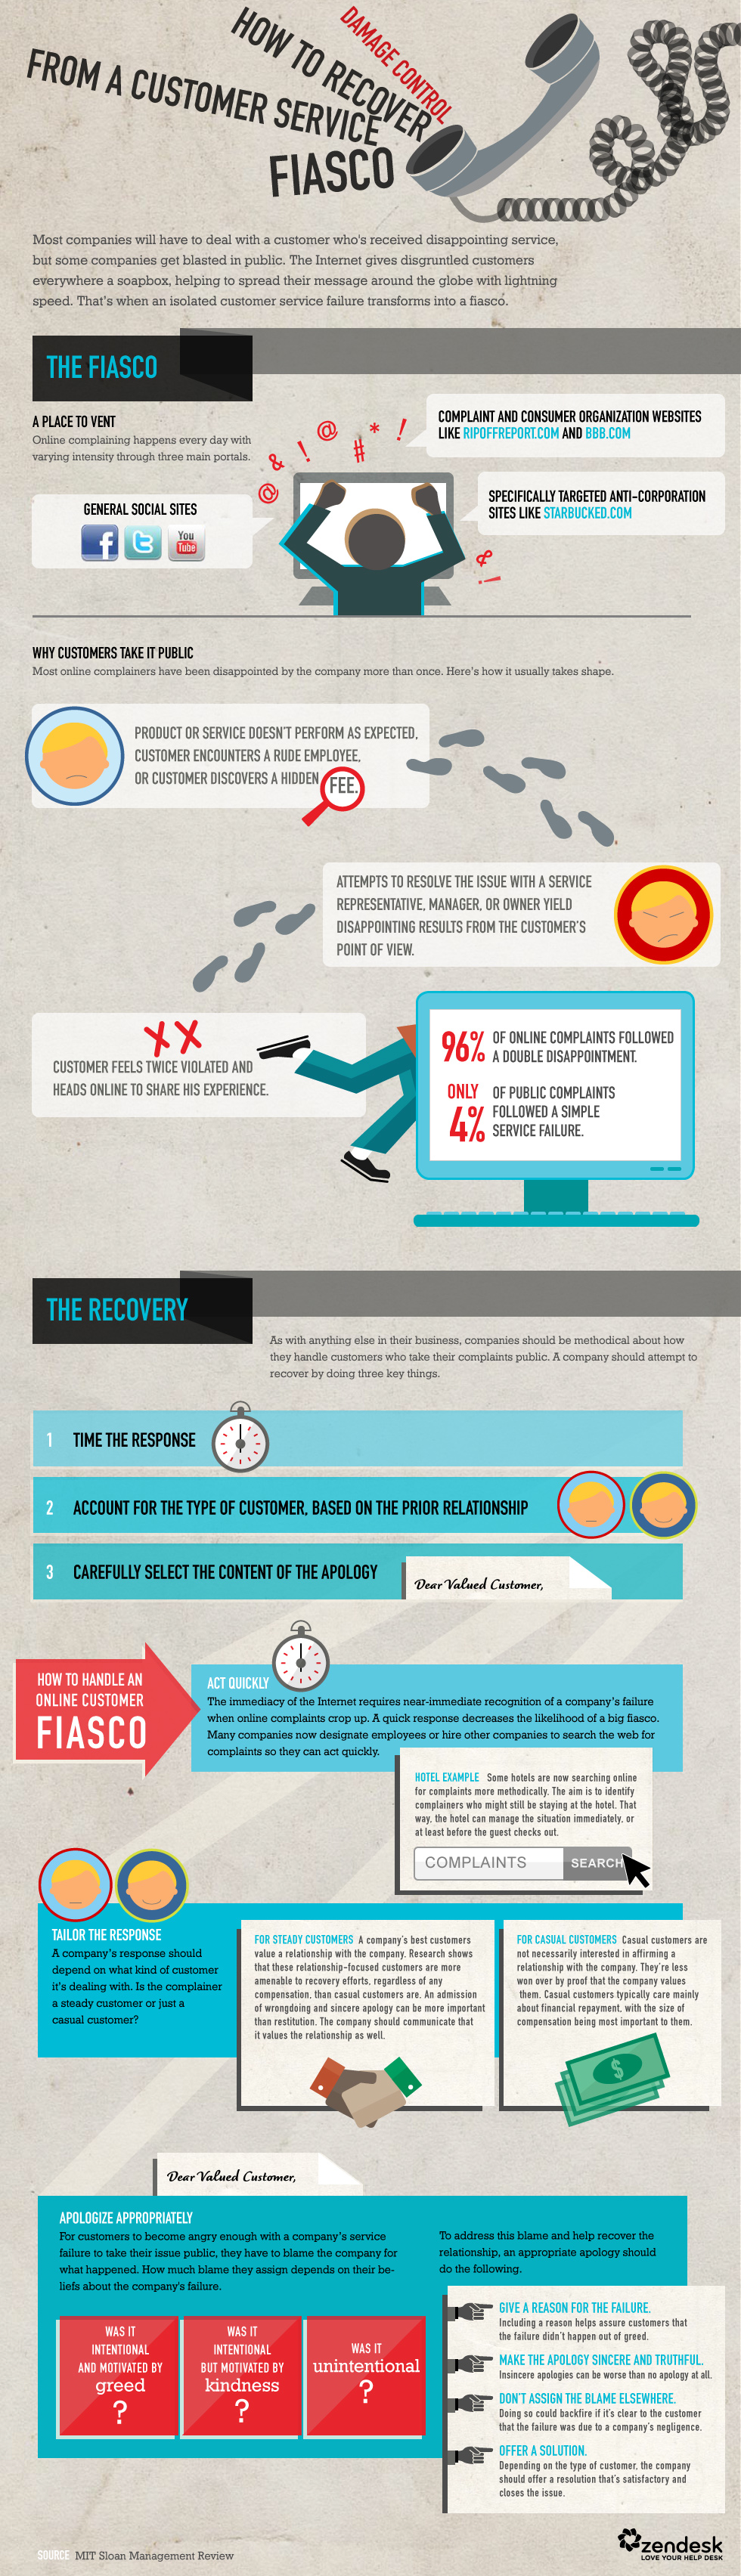 How To Recover From A Customer Service Fiasco Infographic